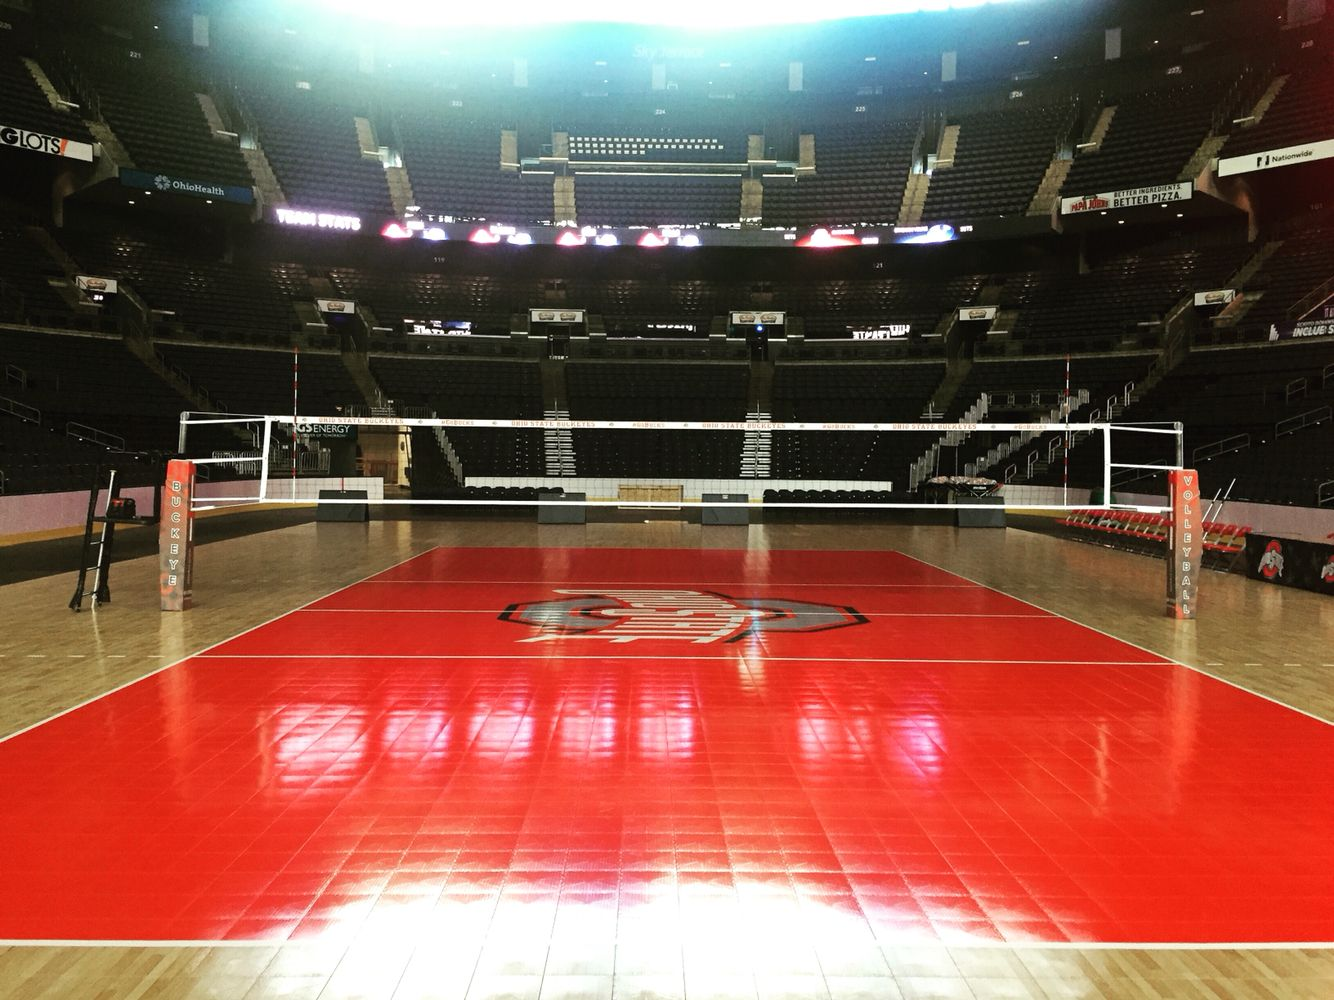 Sports Imports Dc Koehl Classic At Nationwide Arena Sportsimports Atthecenter Volleyball Net Indoor Volleyball Volleyball